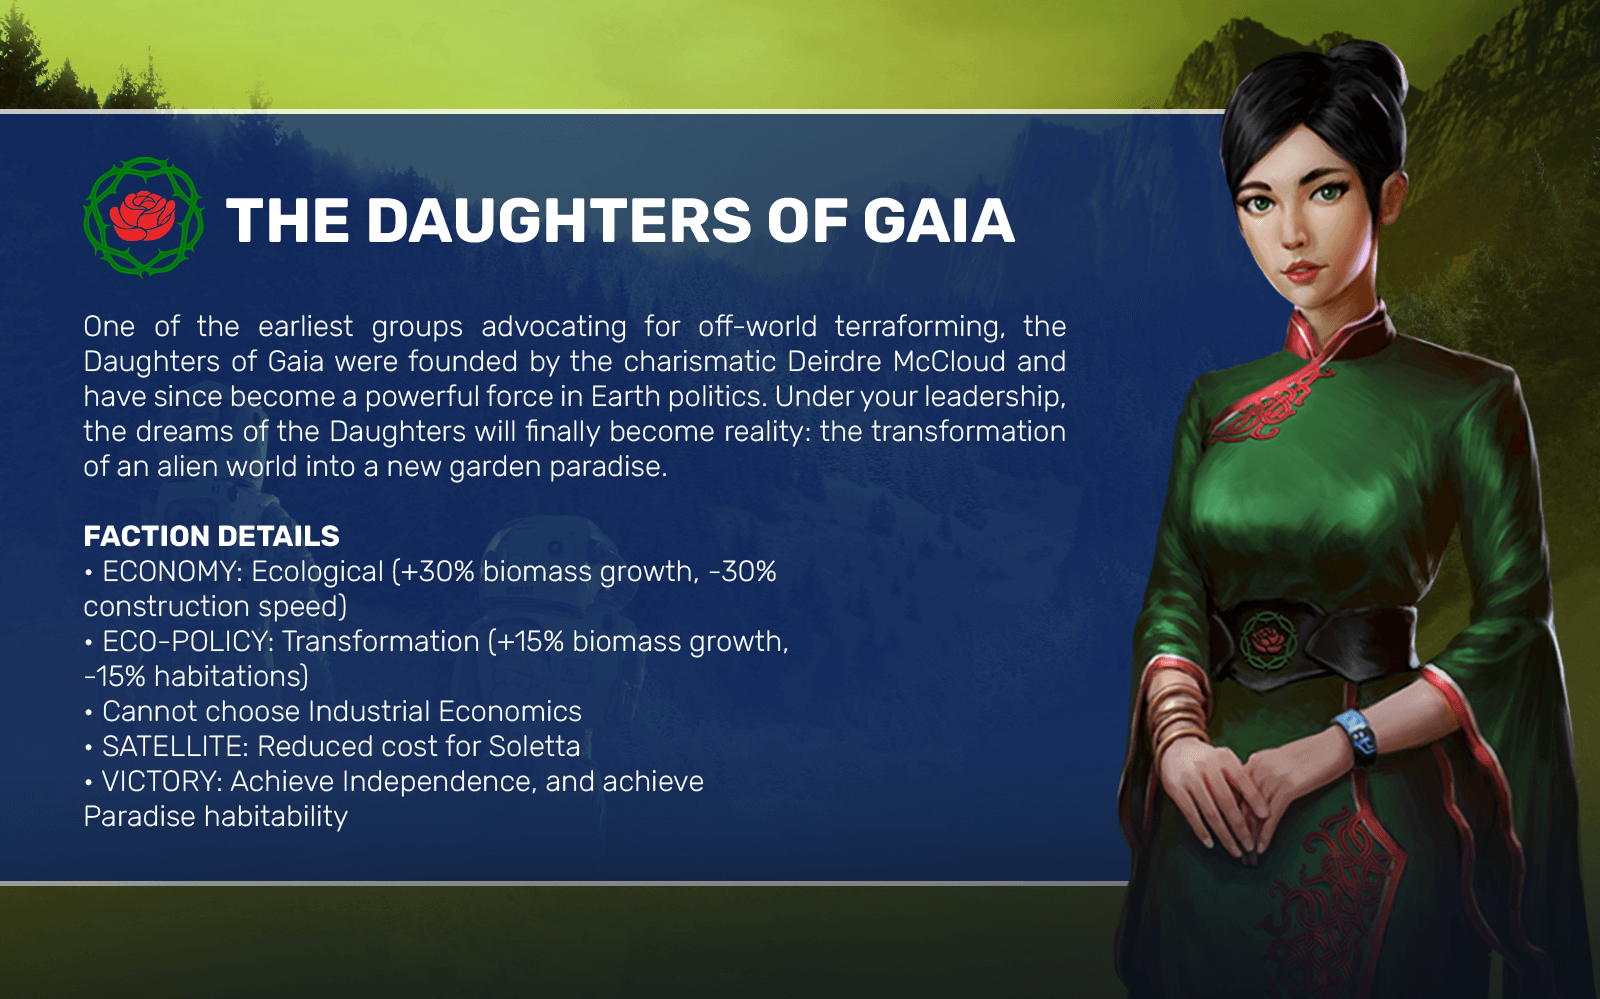 THE DAUGHTERS OF GAIA